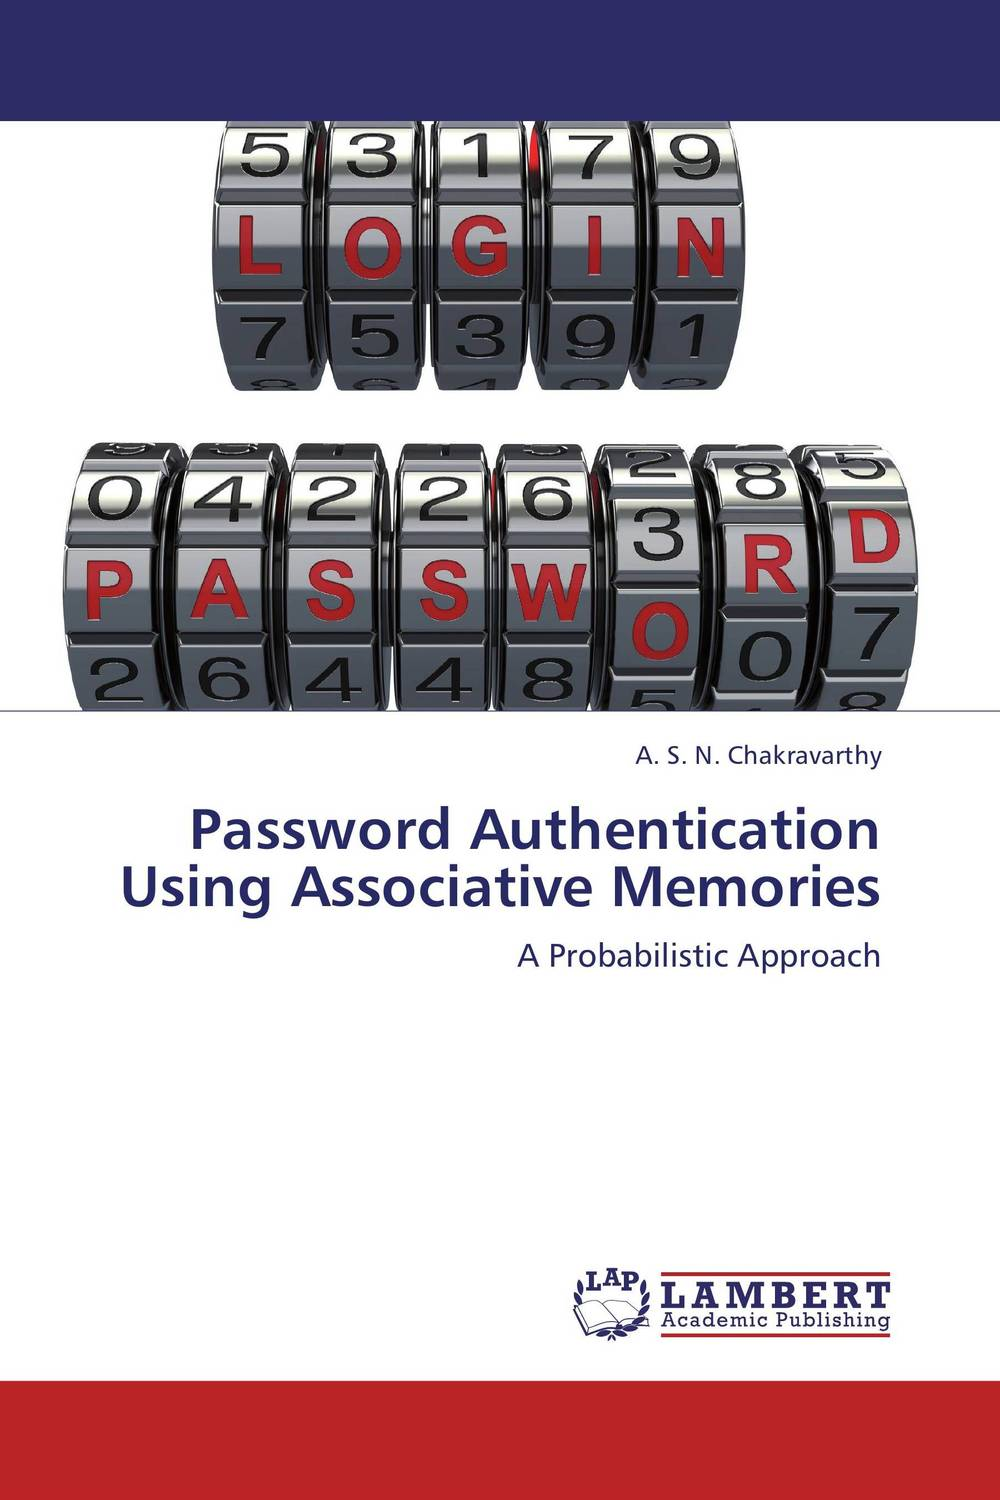 Password Authentication Using Associative Memories belousov a security features of banknotes and other documents methods of authentication manual денежные билеты бланки ценных бумаг и документов